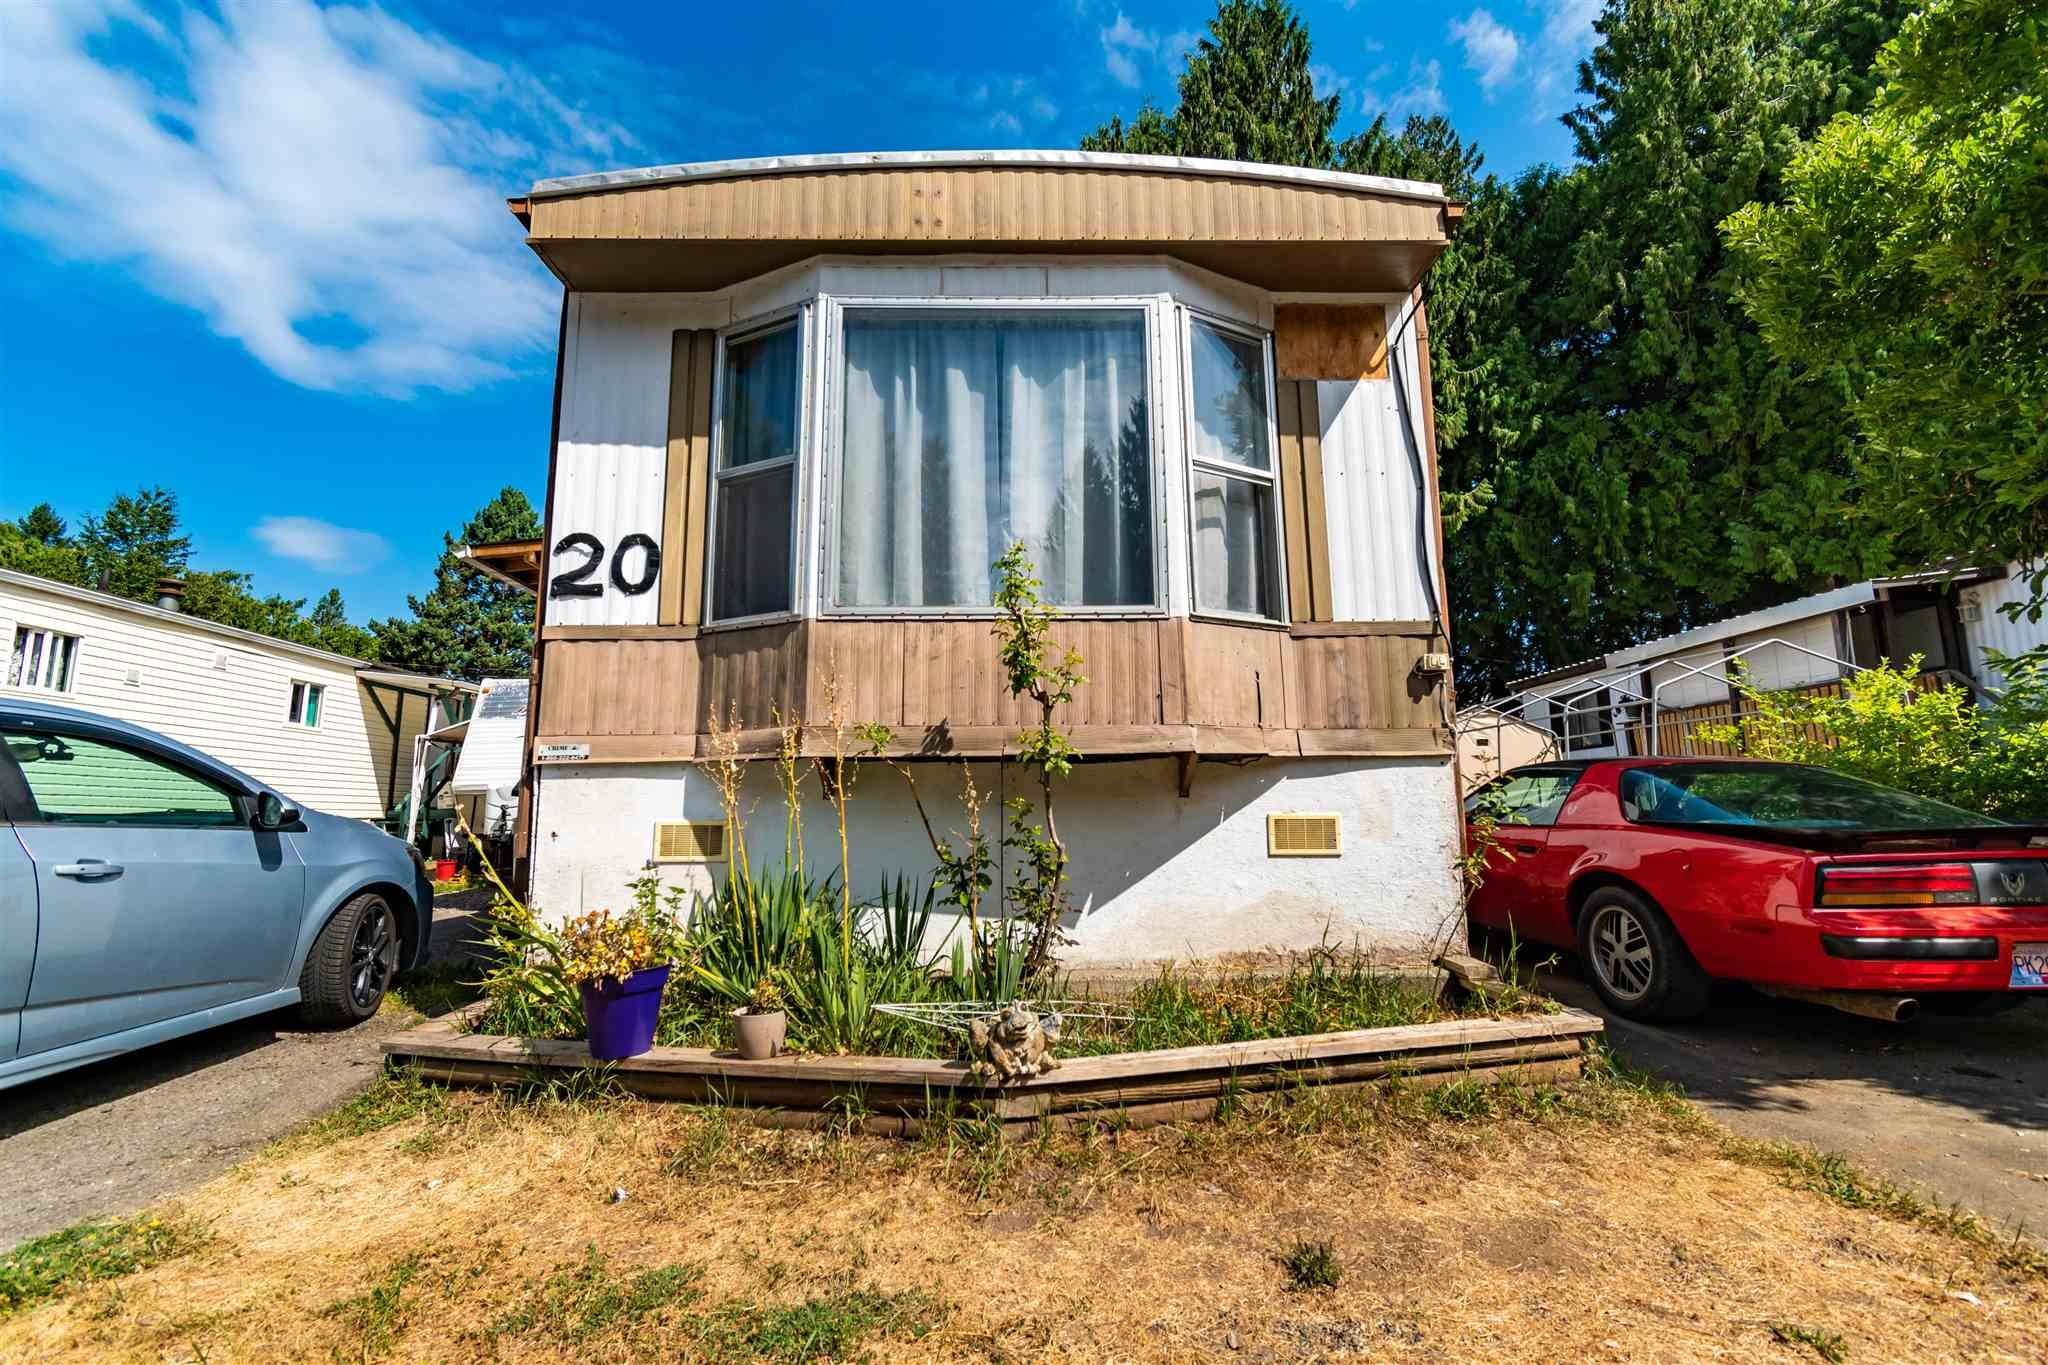 """Main Photo: 20 52604 YALE Road in Rosedale: Rosedale Popkum House for sale in """"MOUNT CHEAM MOBILE HOME PARK"""" : MLS®# R2604762"""